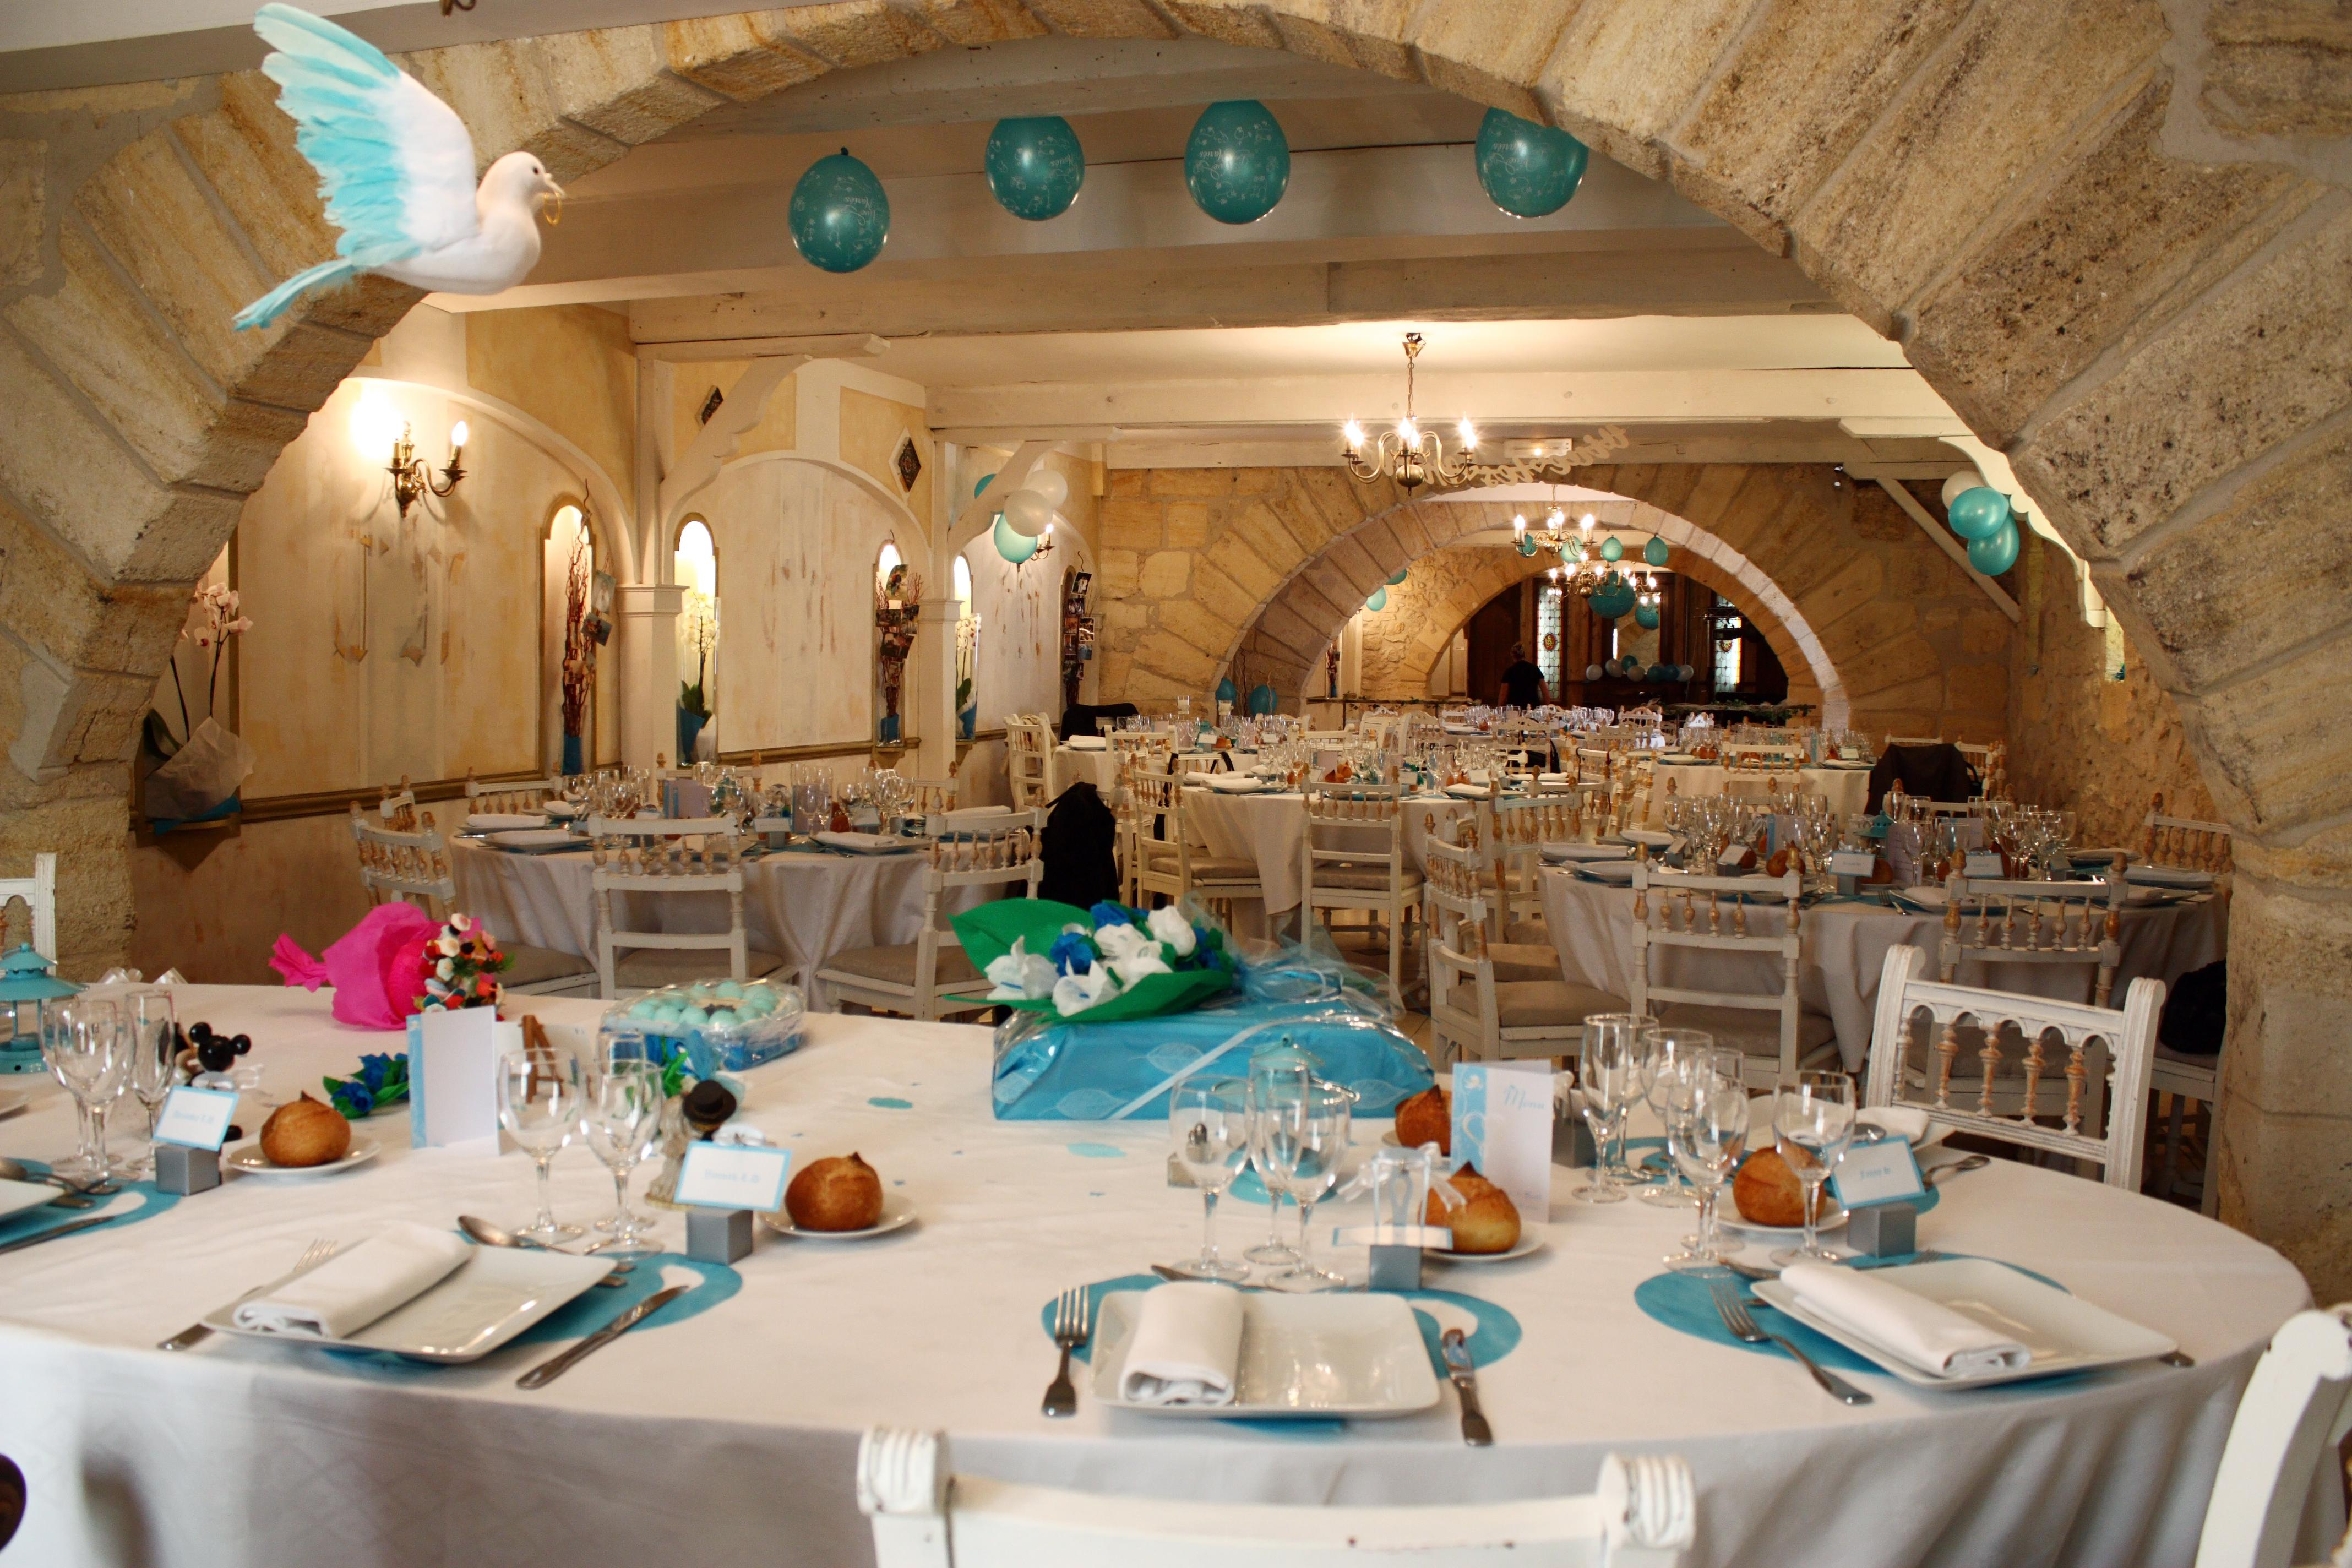 Dcoration Salle De Rception Mariage Stunning Dcorations De Mariage